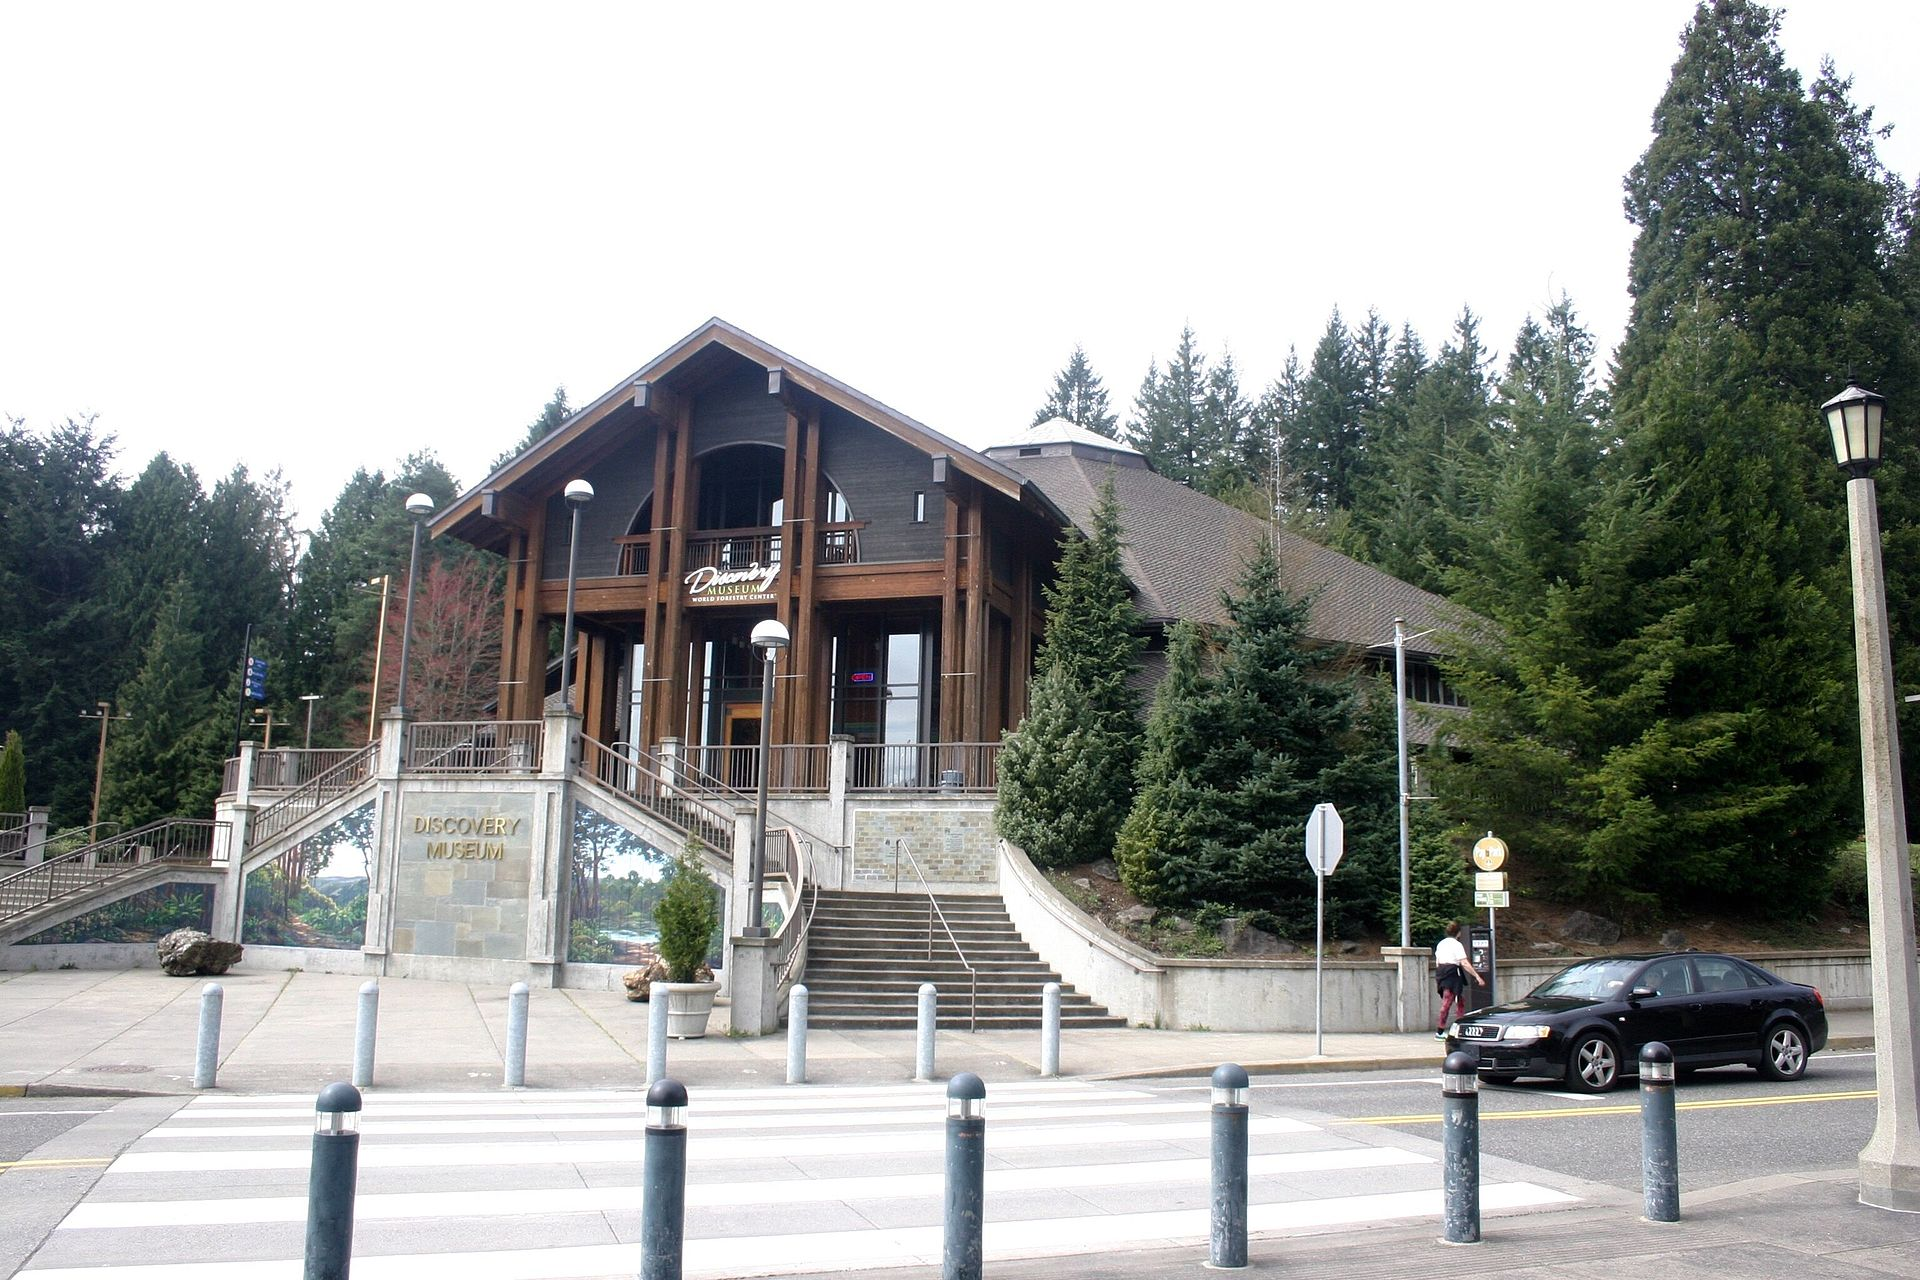 The World Forestry Center History was founded in 1966 and opened the museum building in 1971.